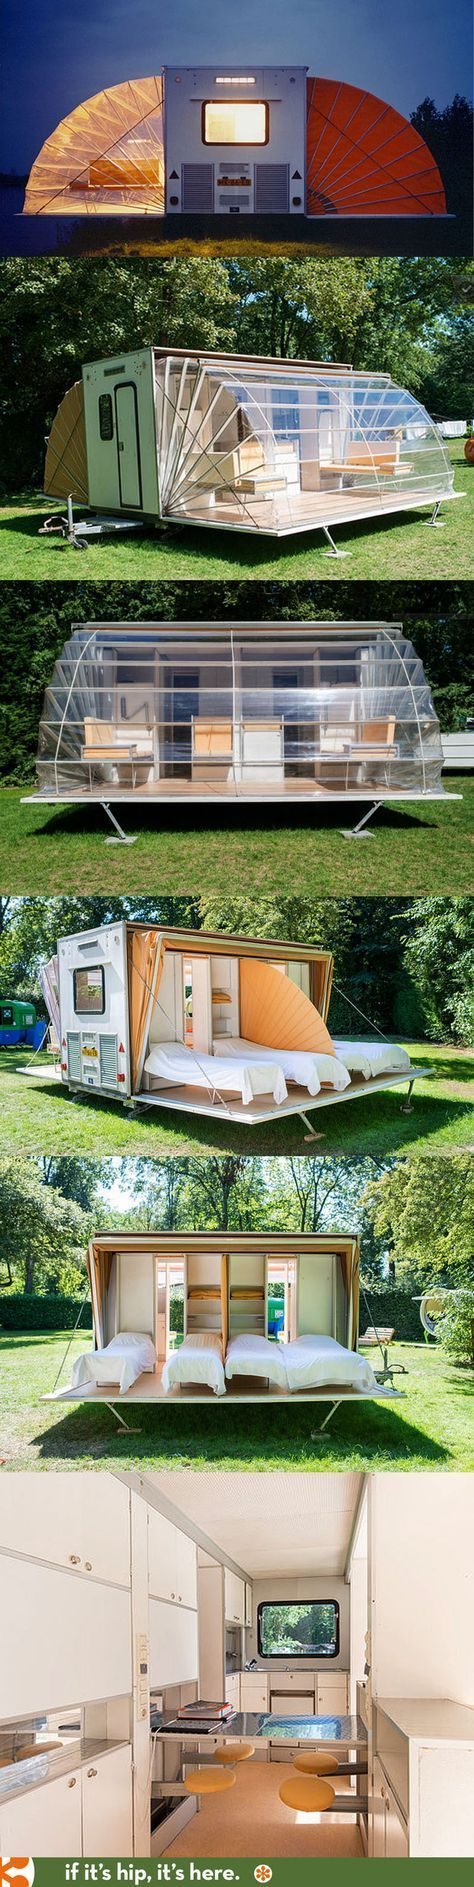 Photo of The coolest caravan of the urban campsite, The Marquis by Eduard Bohtli …